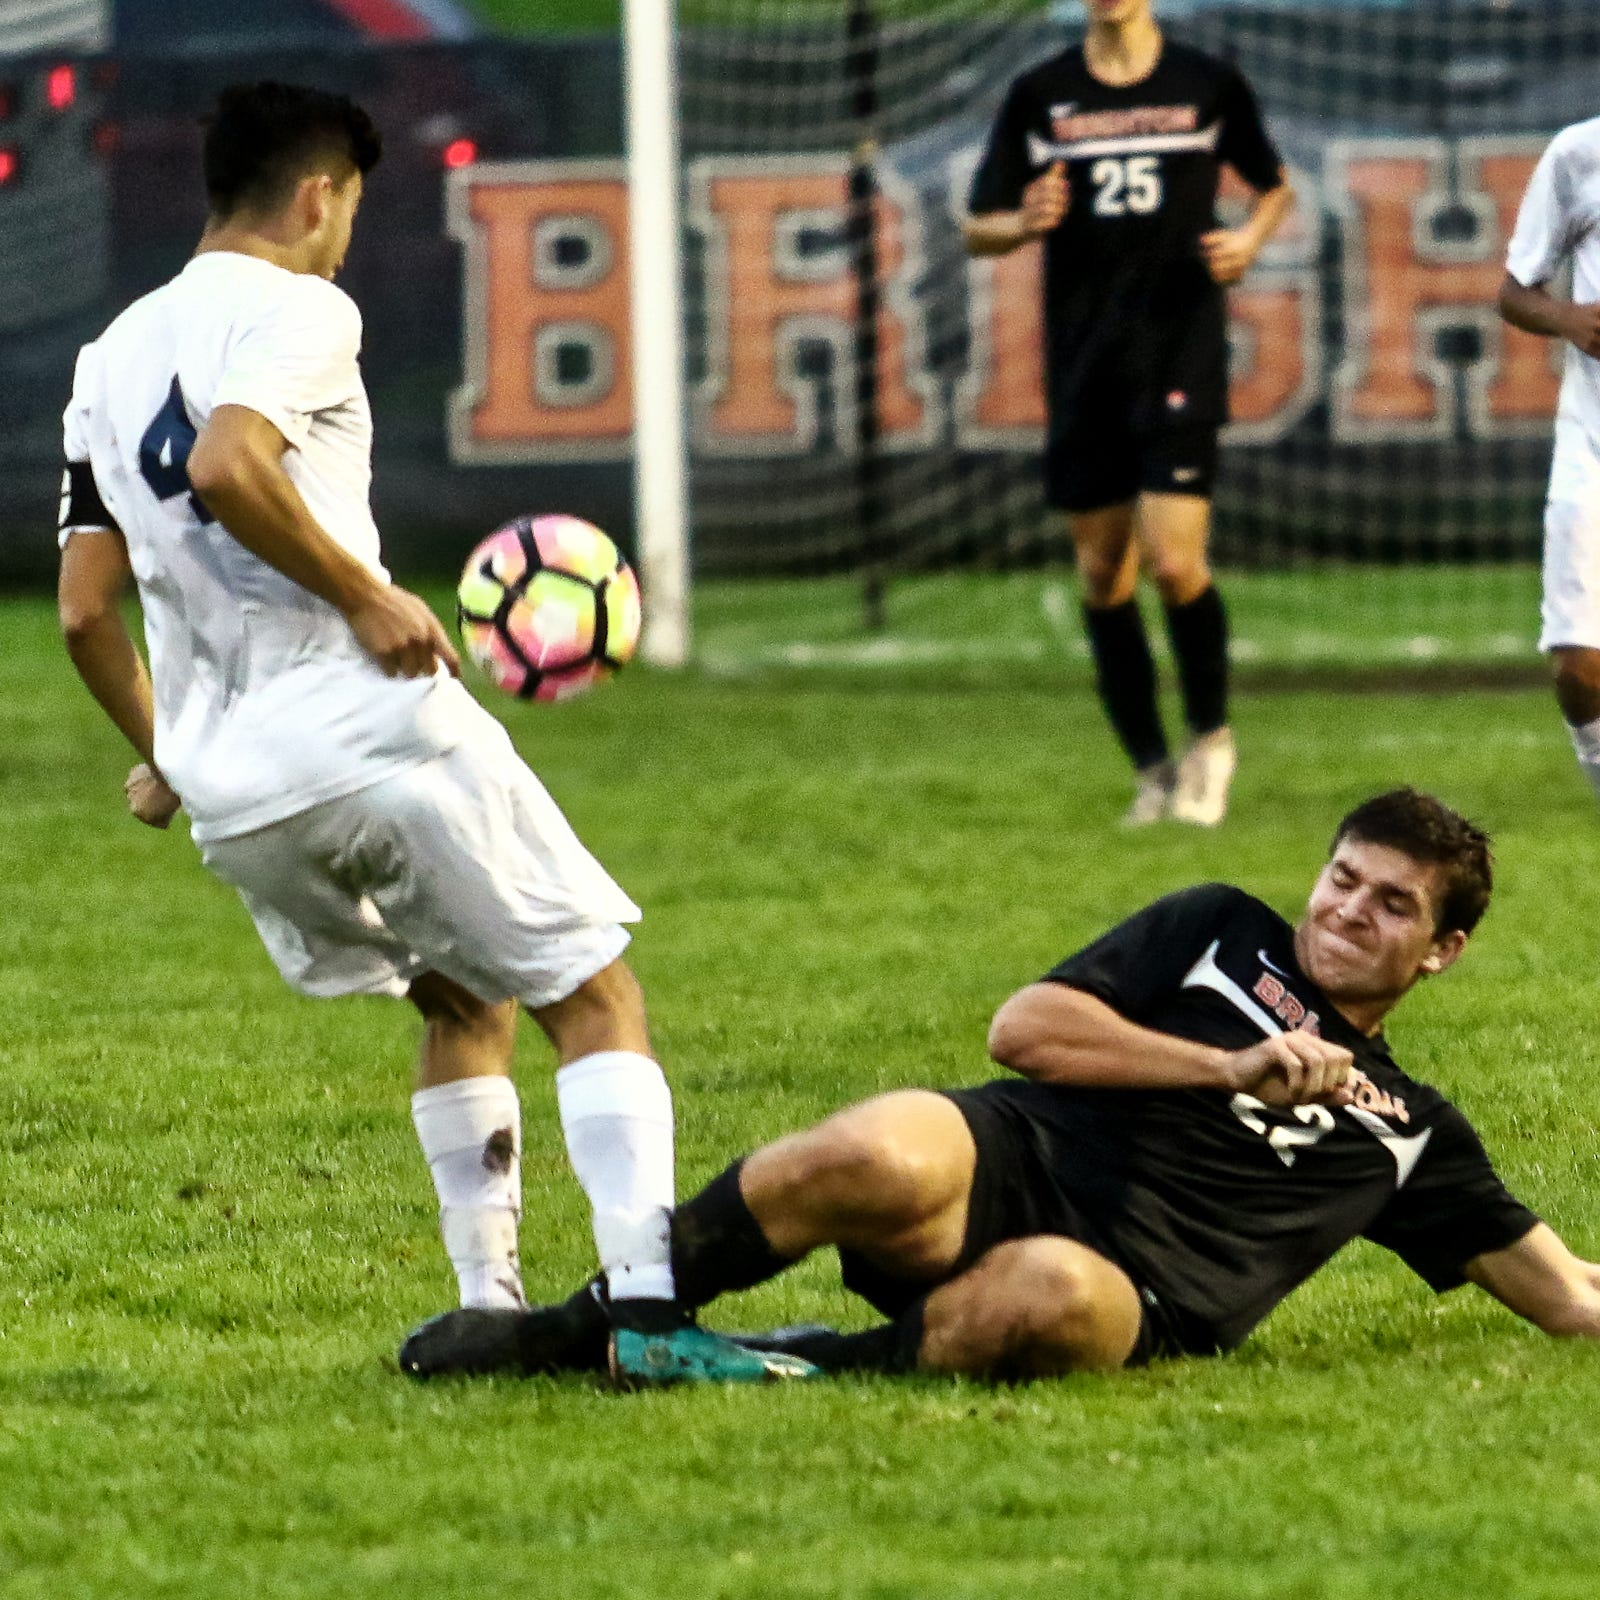 KLAA soccer title just the beginning for Brighton?